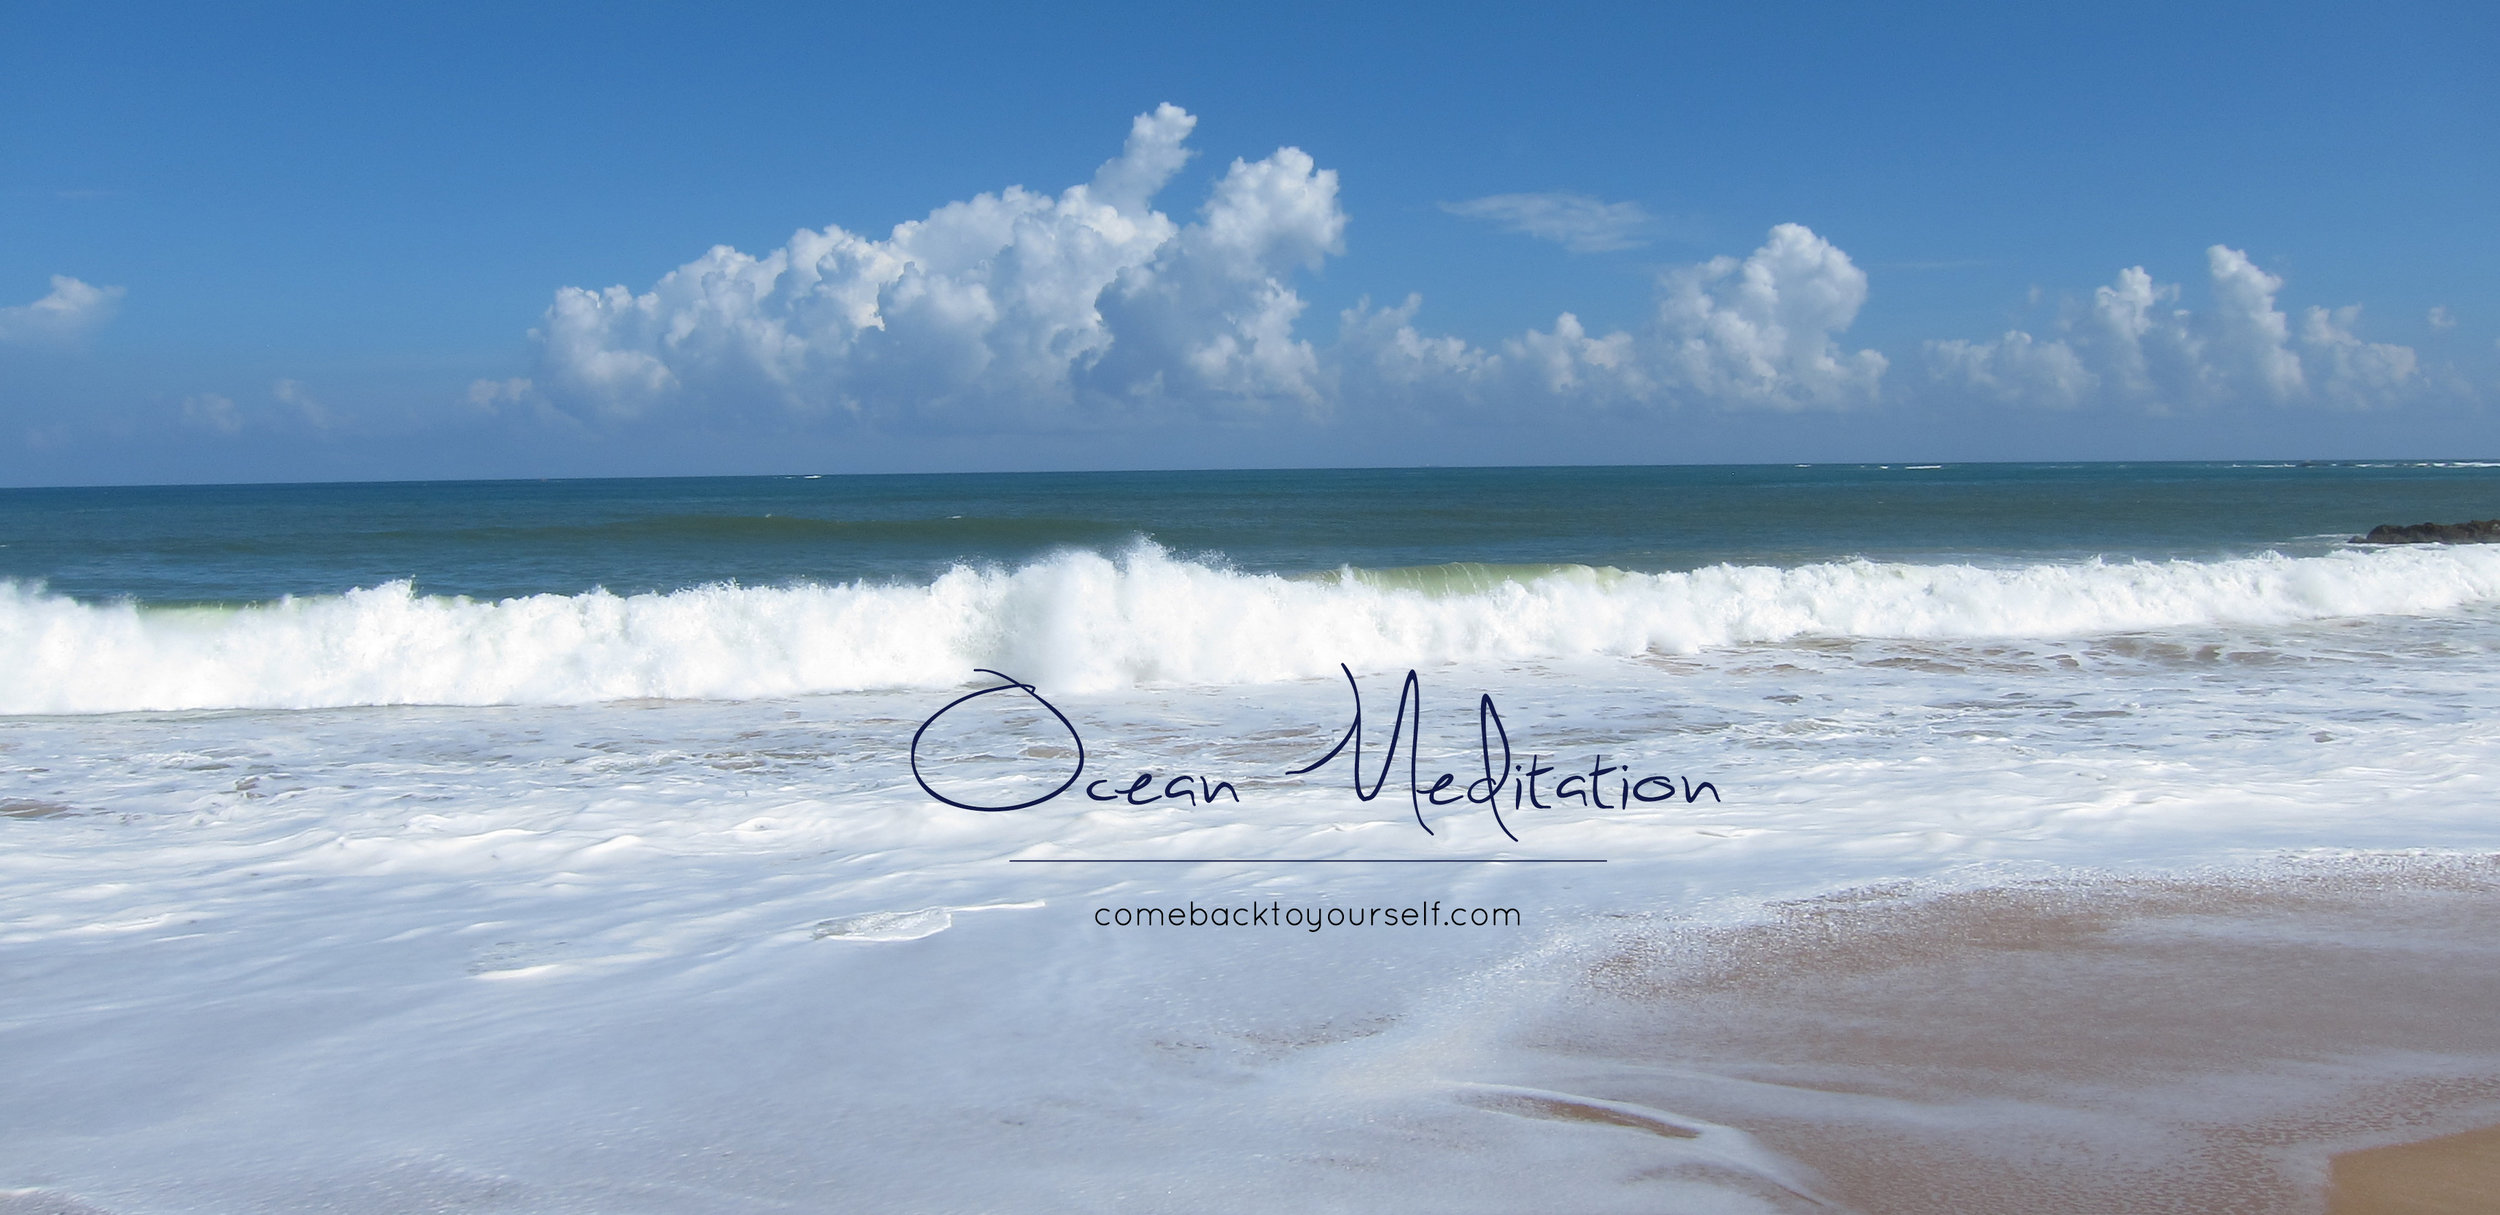 ocean meditation come back to yourself.jpg